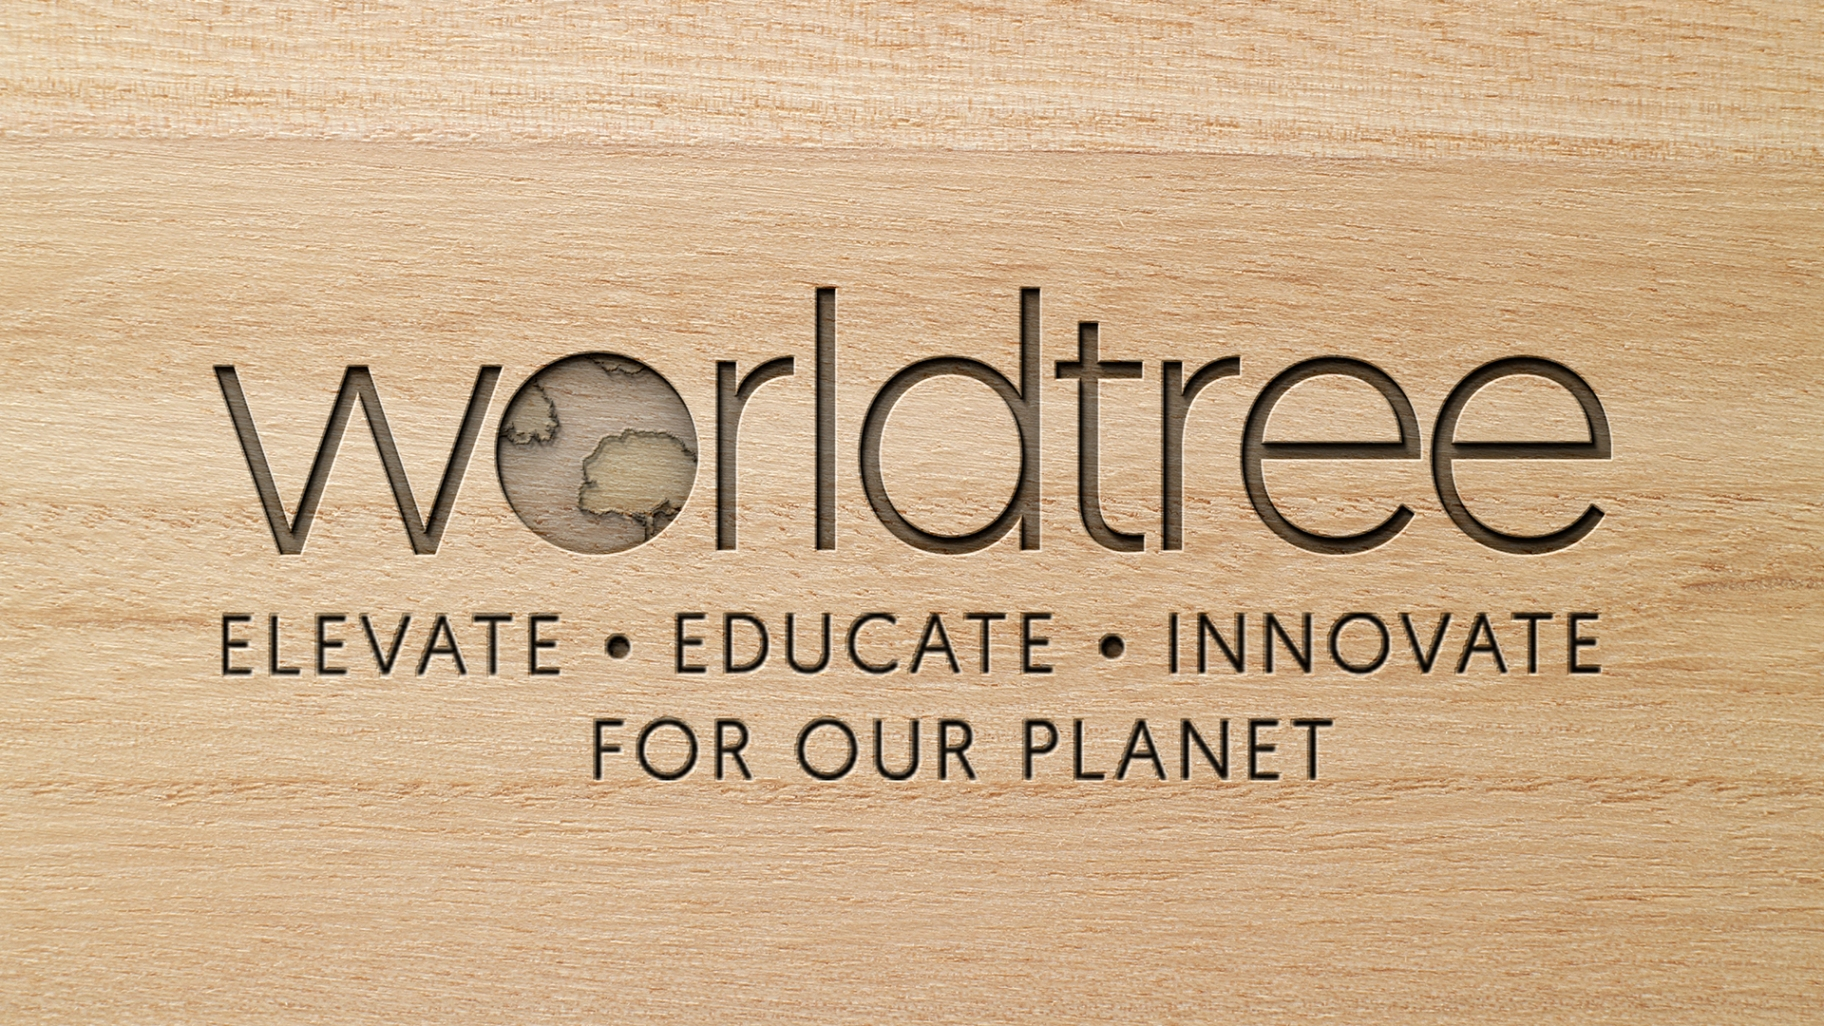 Sustainable timber investment that maximizes economic and environmental benefits